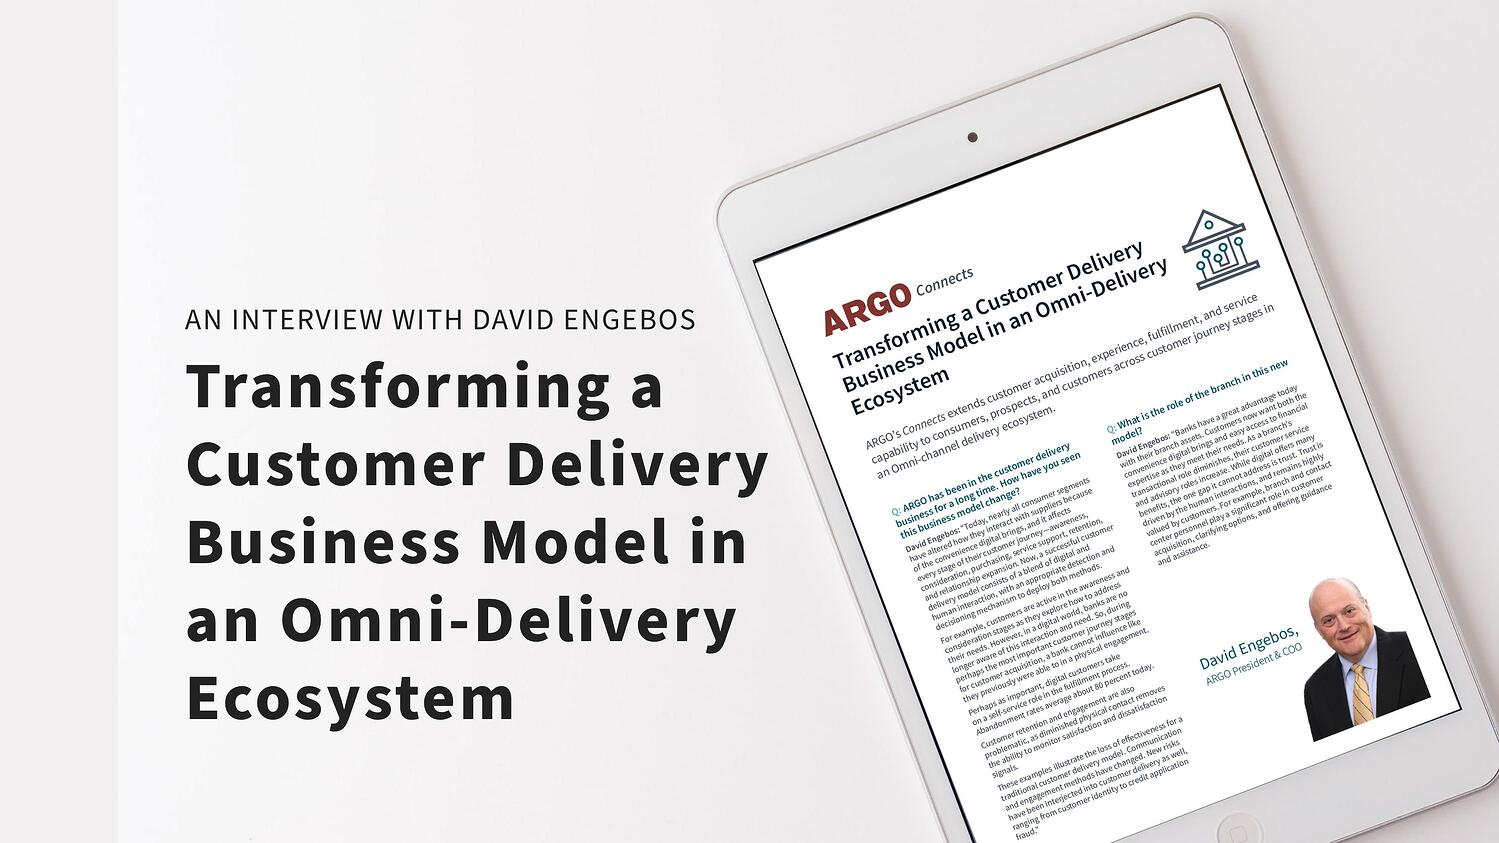 Transforming a Customer Delivery Business Model in an Omni-Delivery Ecosystem